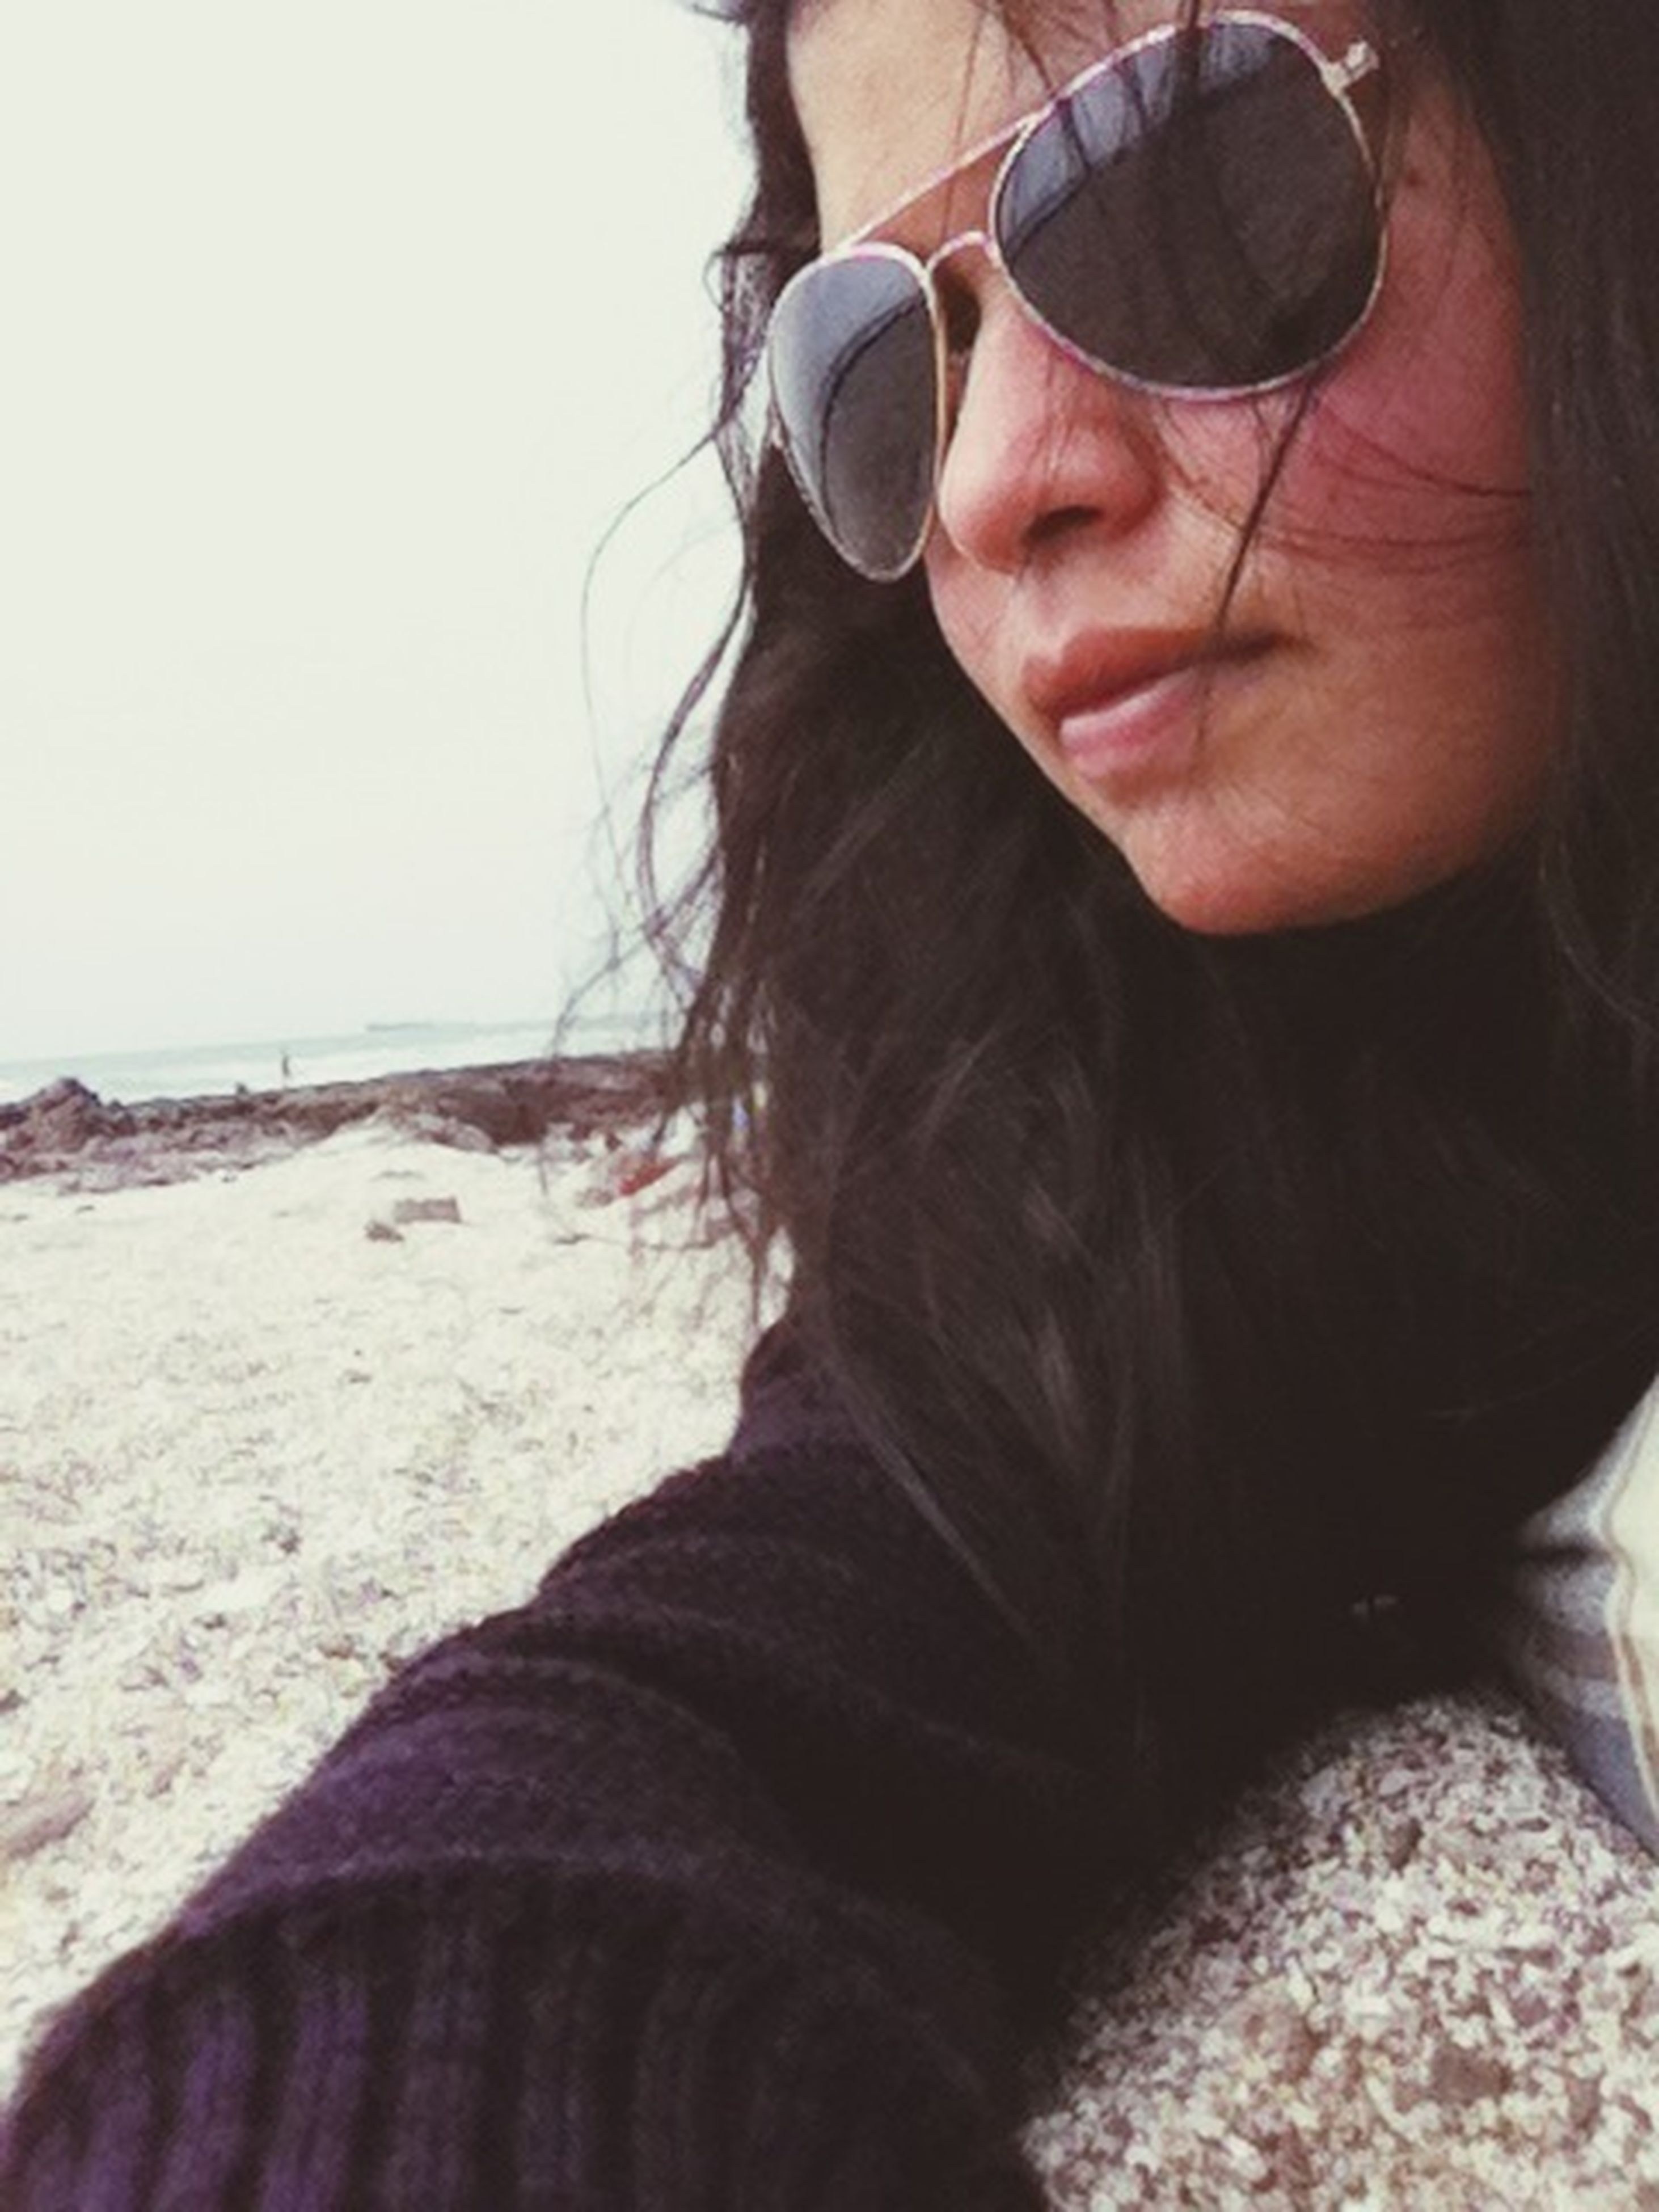 sunglasses, lifestyles, leisure activity, young adult, headshot, person, beach, close-up, young women, head and shoulders, sunlight, portrait, sea, looking at camera, casual clothing, front view, day, focus on foreground